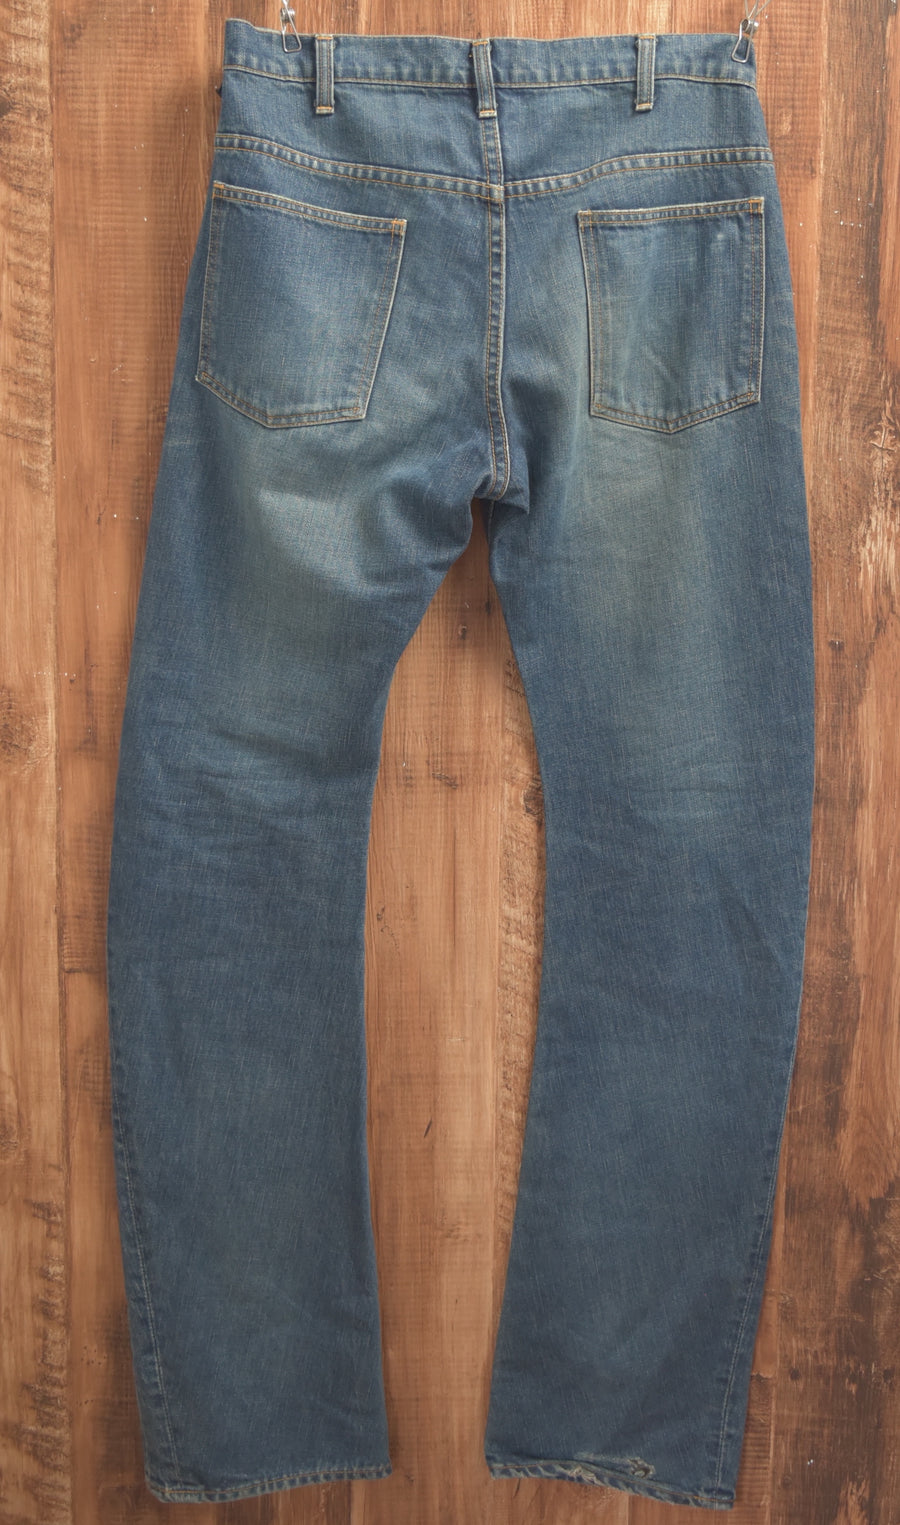 WJK / Indigo Banana Denim Pants / 7390 - 0415 36.5